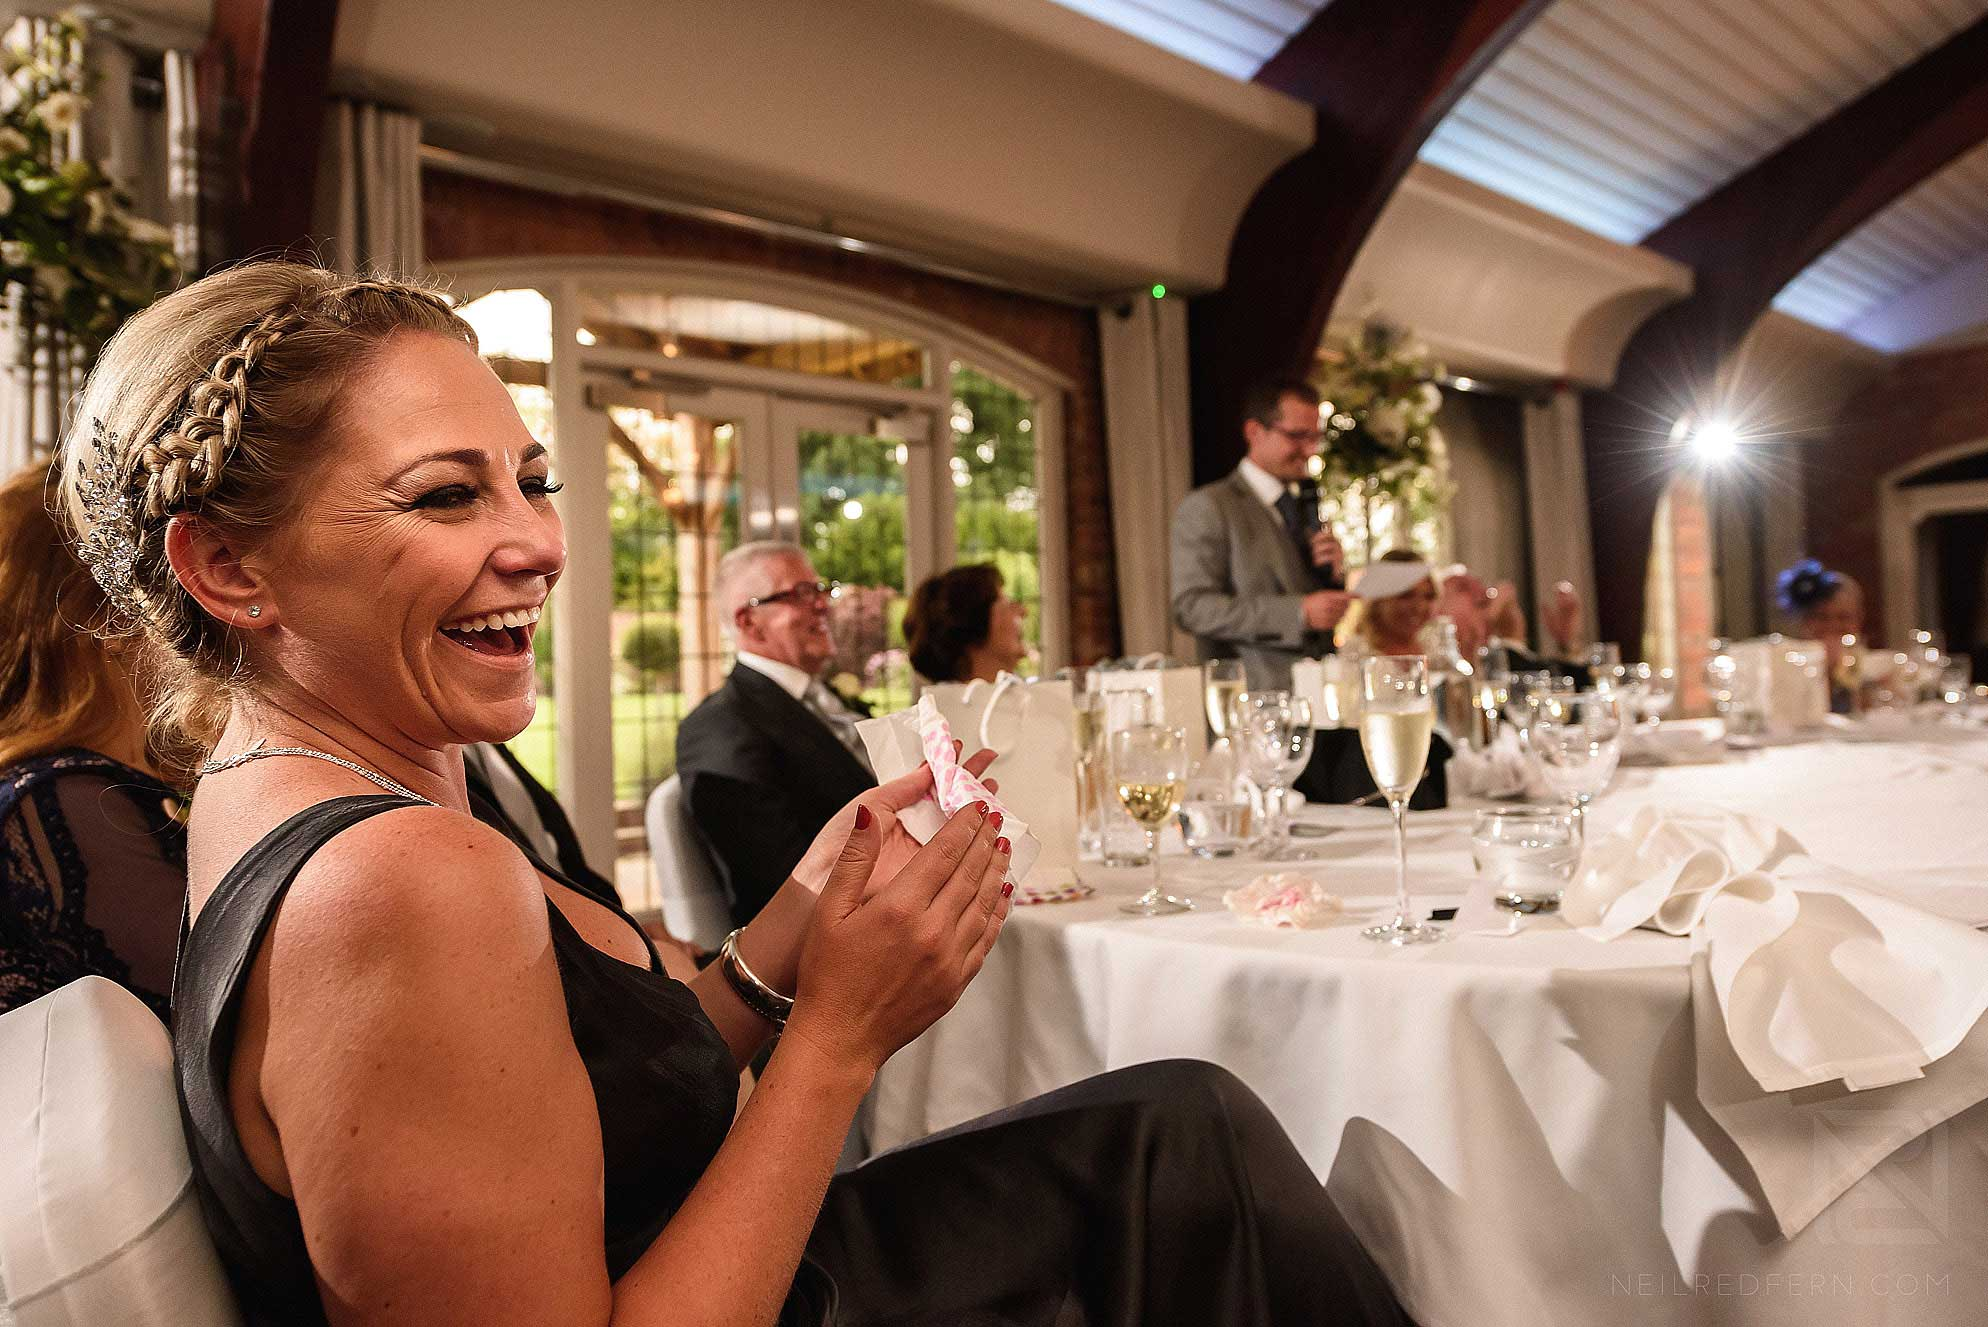 laughing guest at wedding